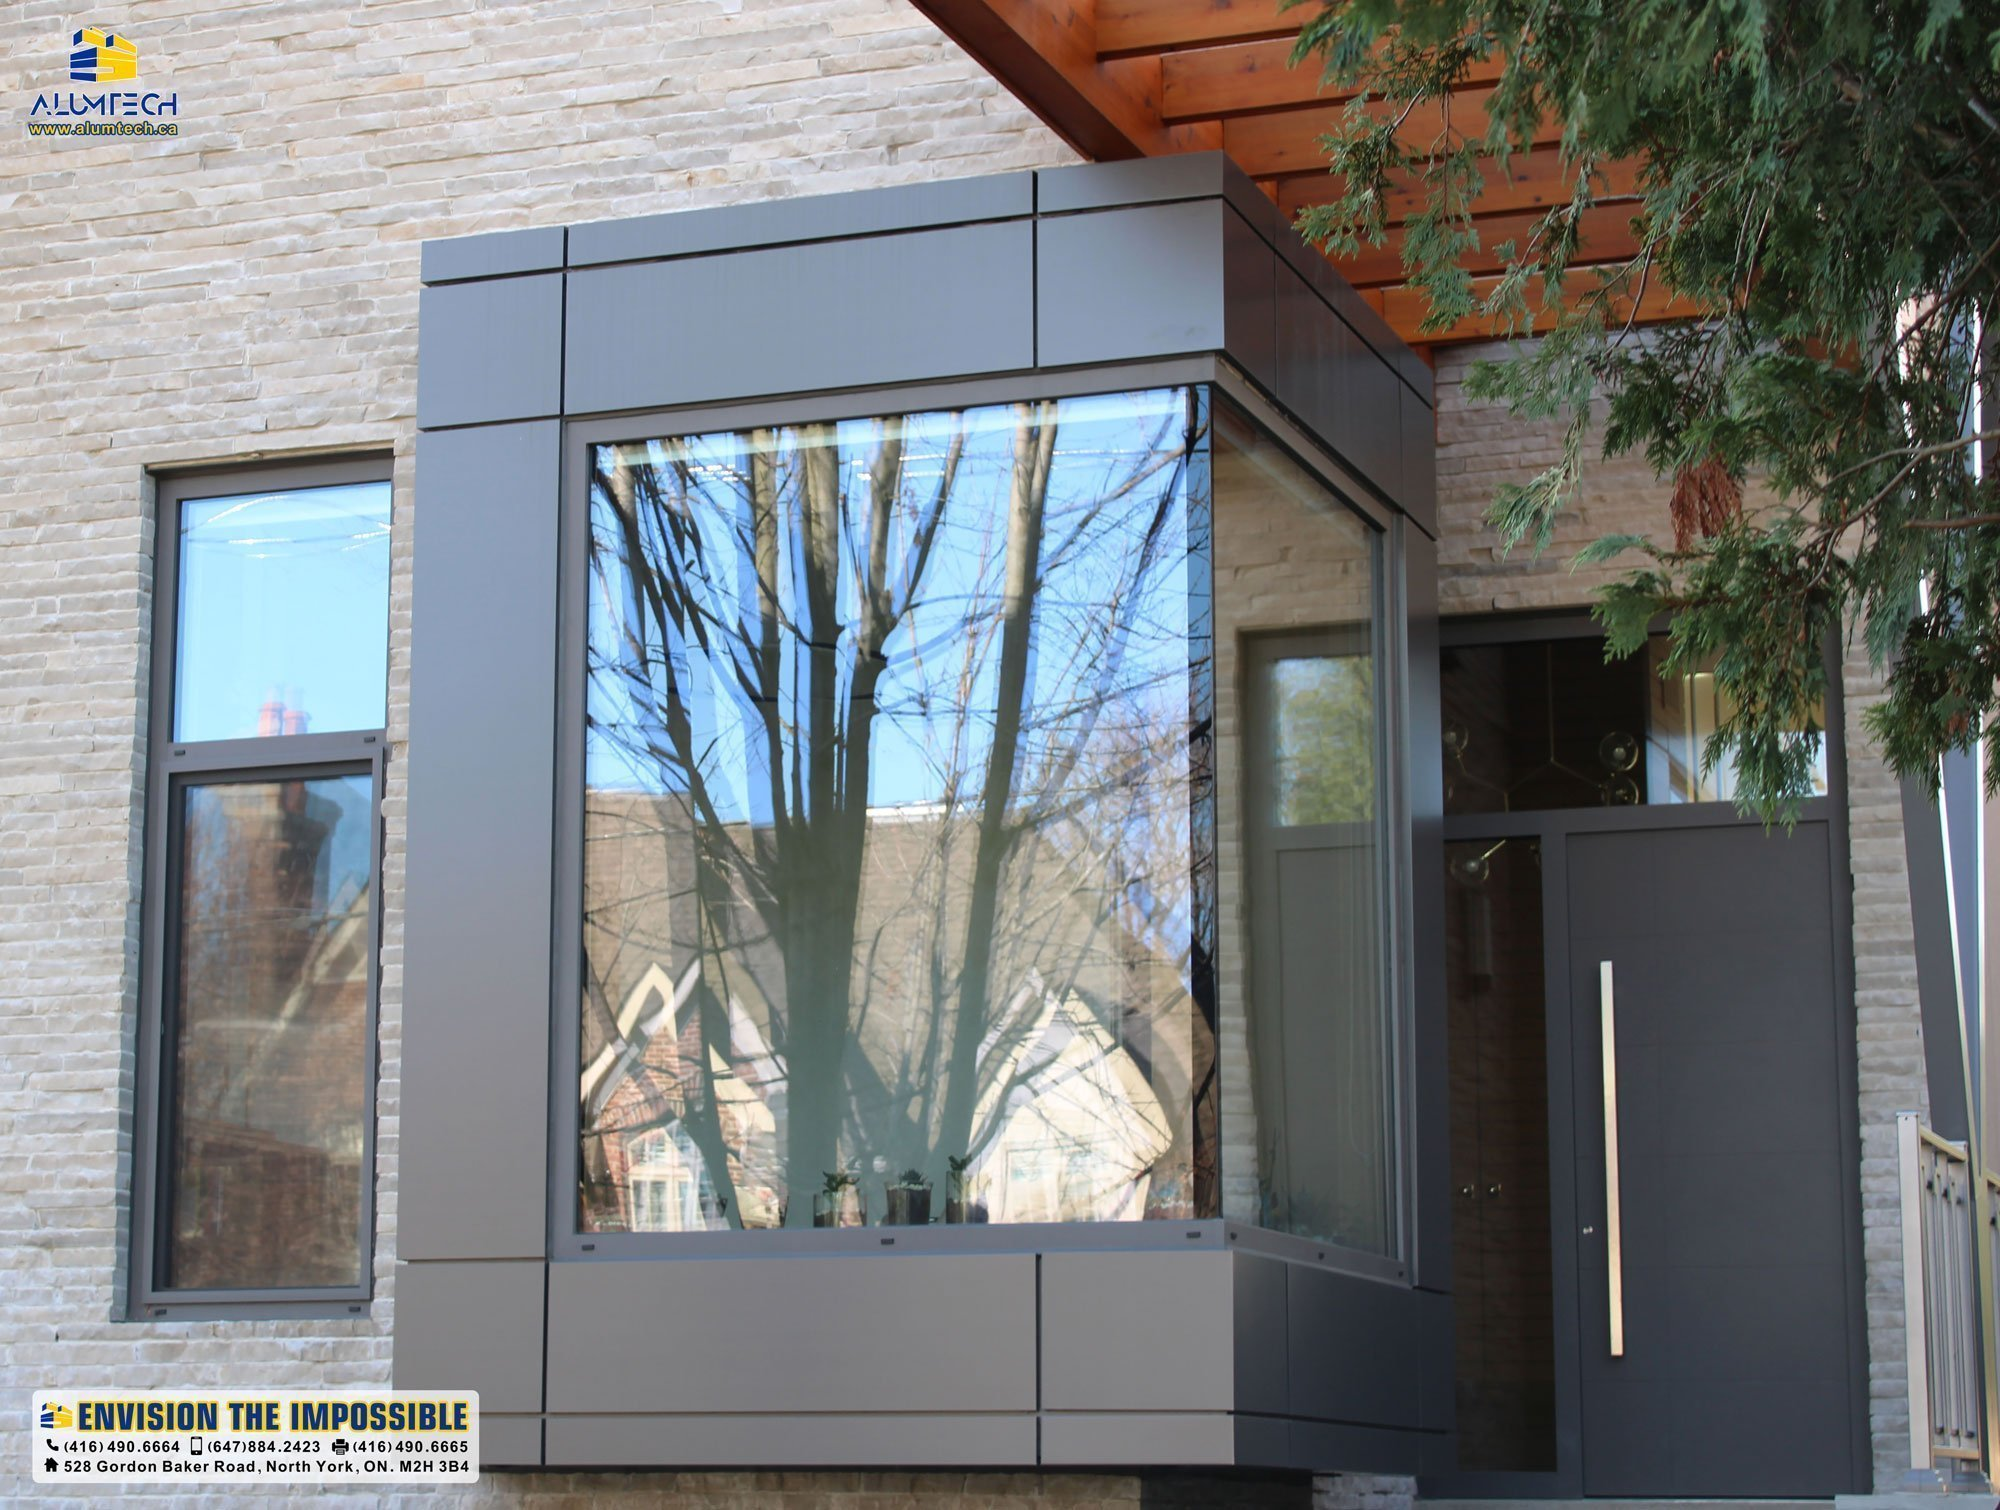 Transfer the traditio1nal look of the building to a modern with ACP/ACM panels